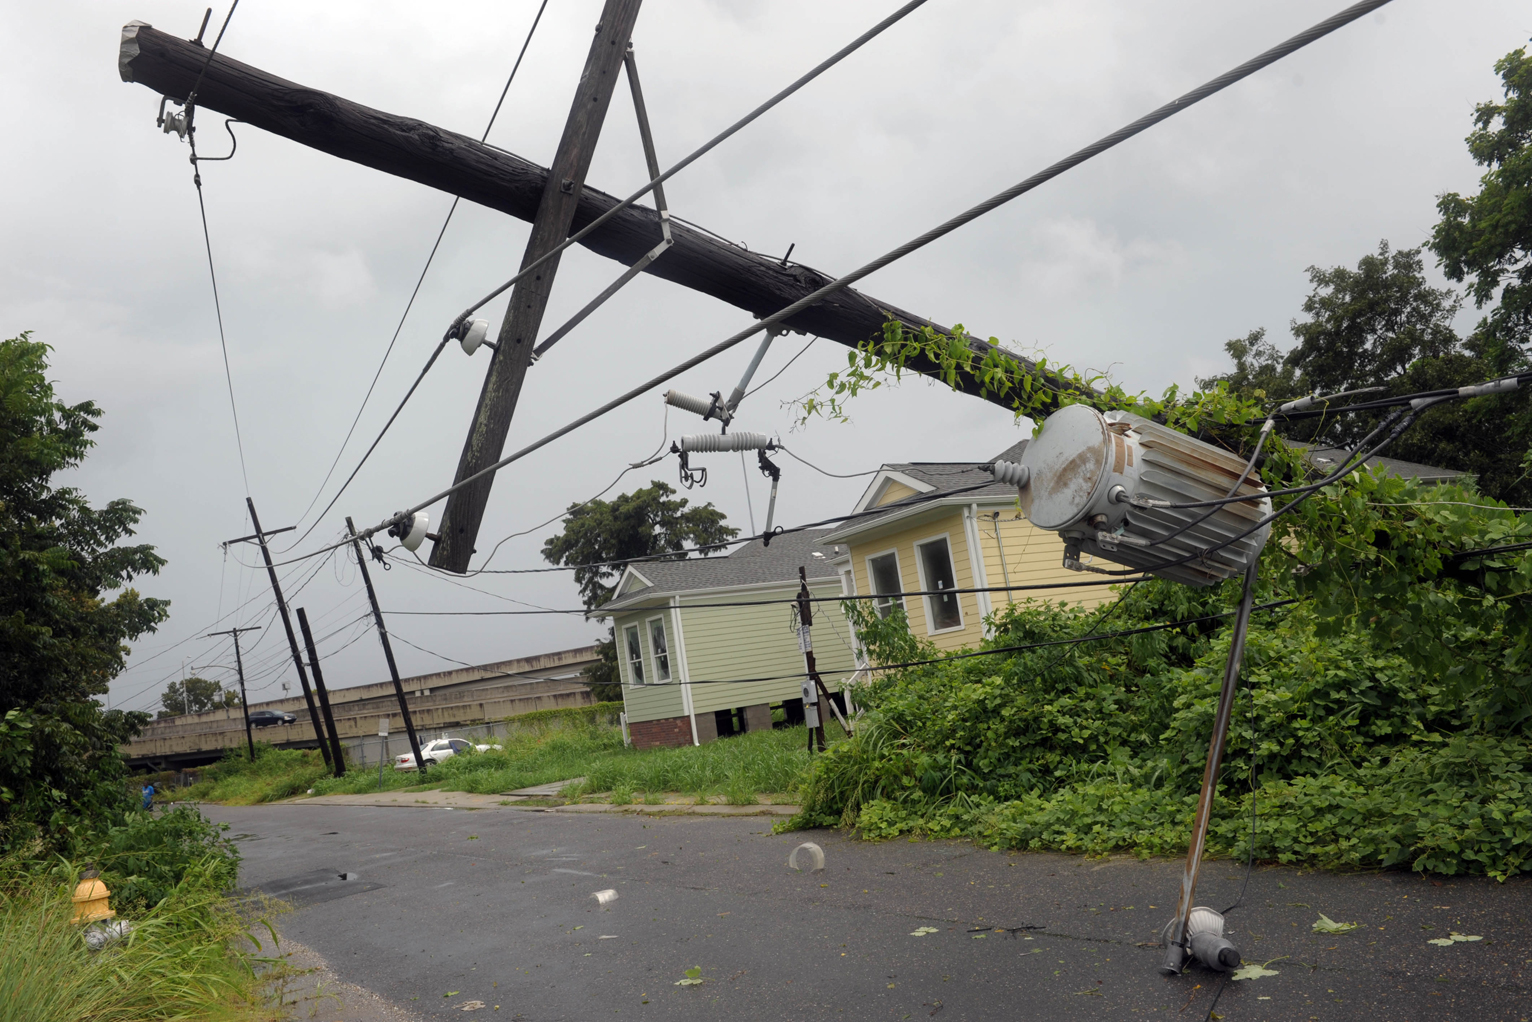 Electric Poles Power Lines : Good wood trade group stands up for utility poles civic